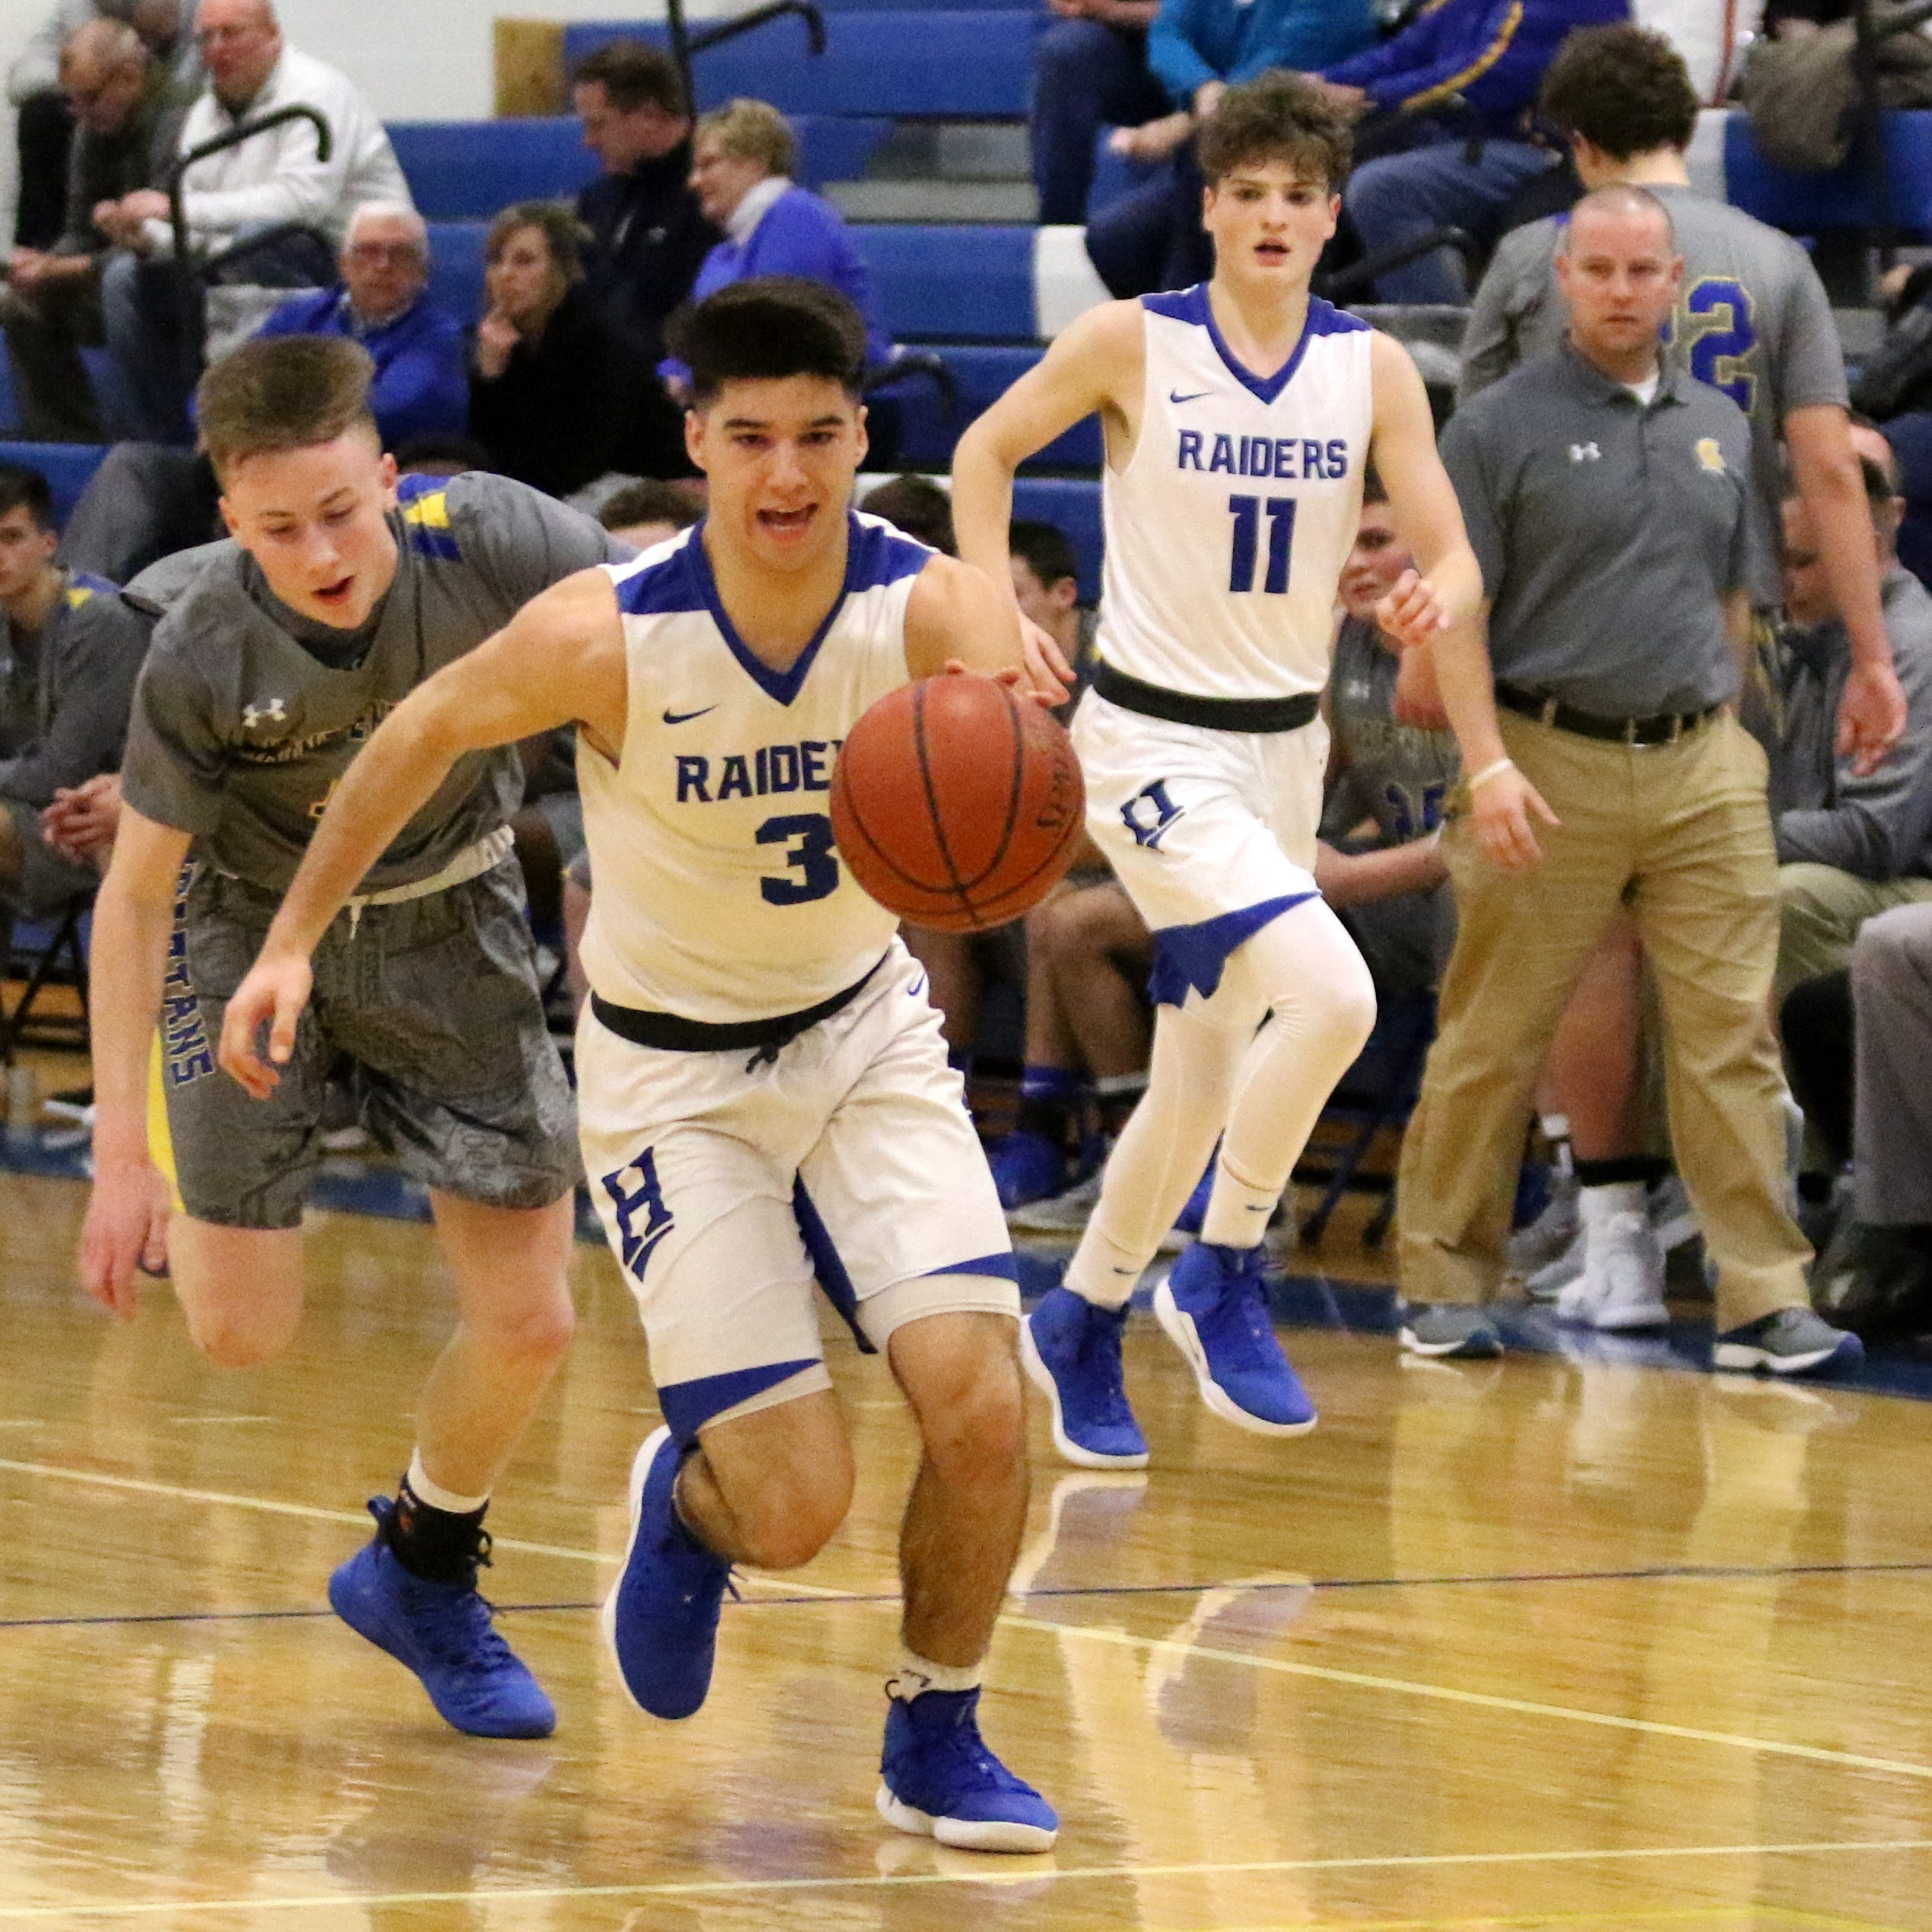 Horseheads boys rally from 19 down to beat Maine-Endwell in overtime